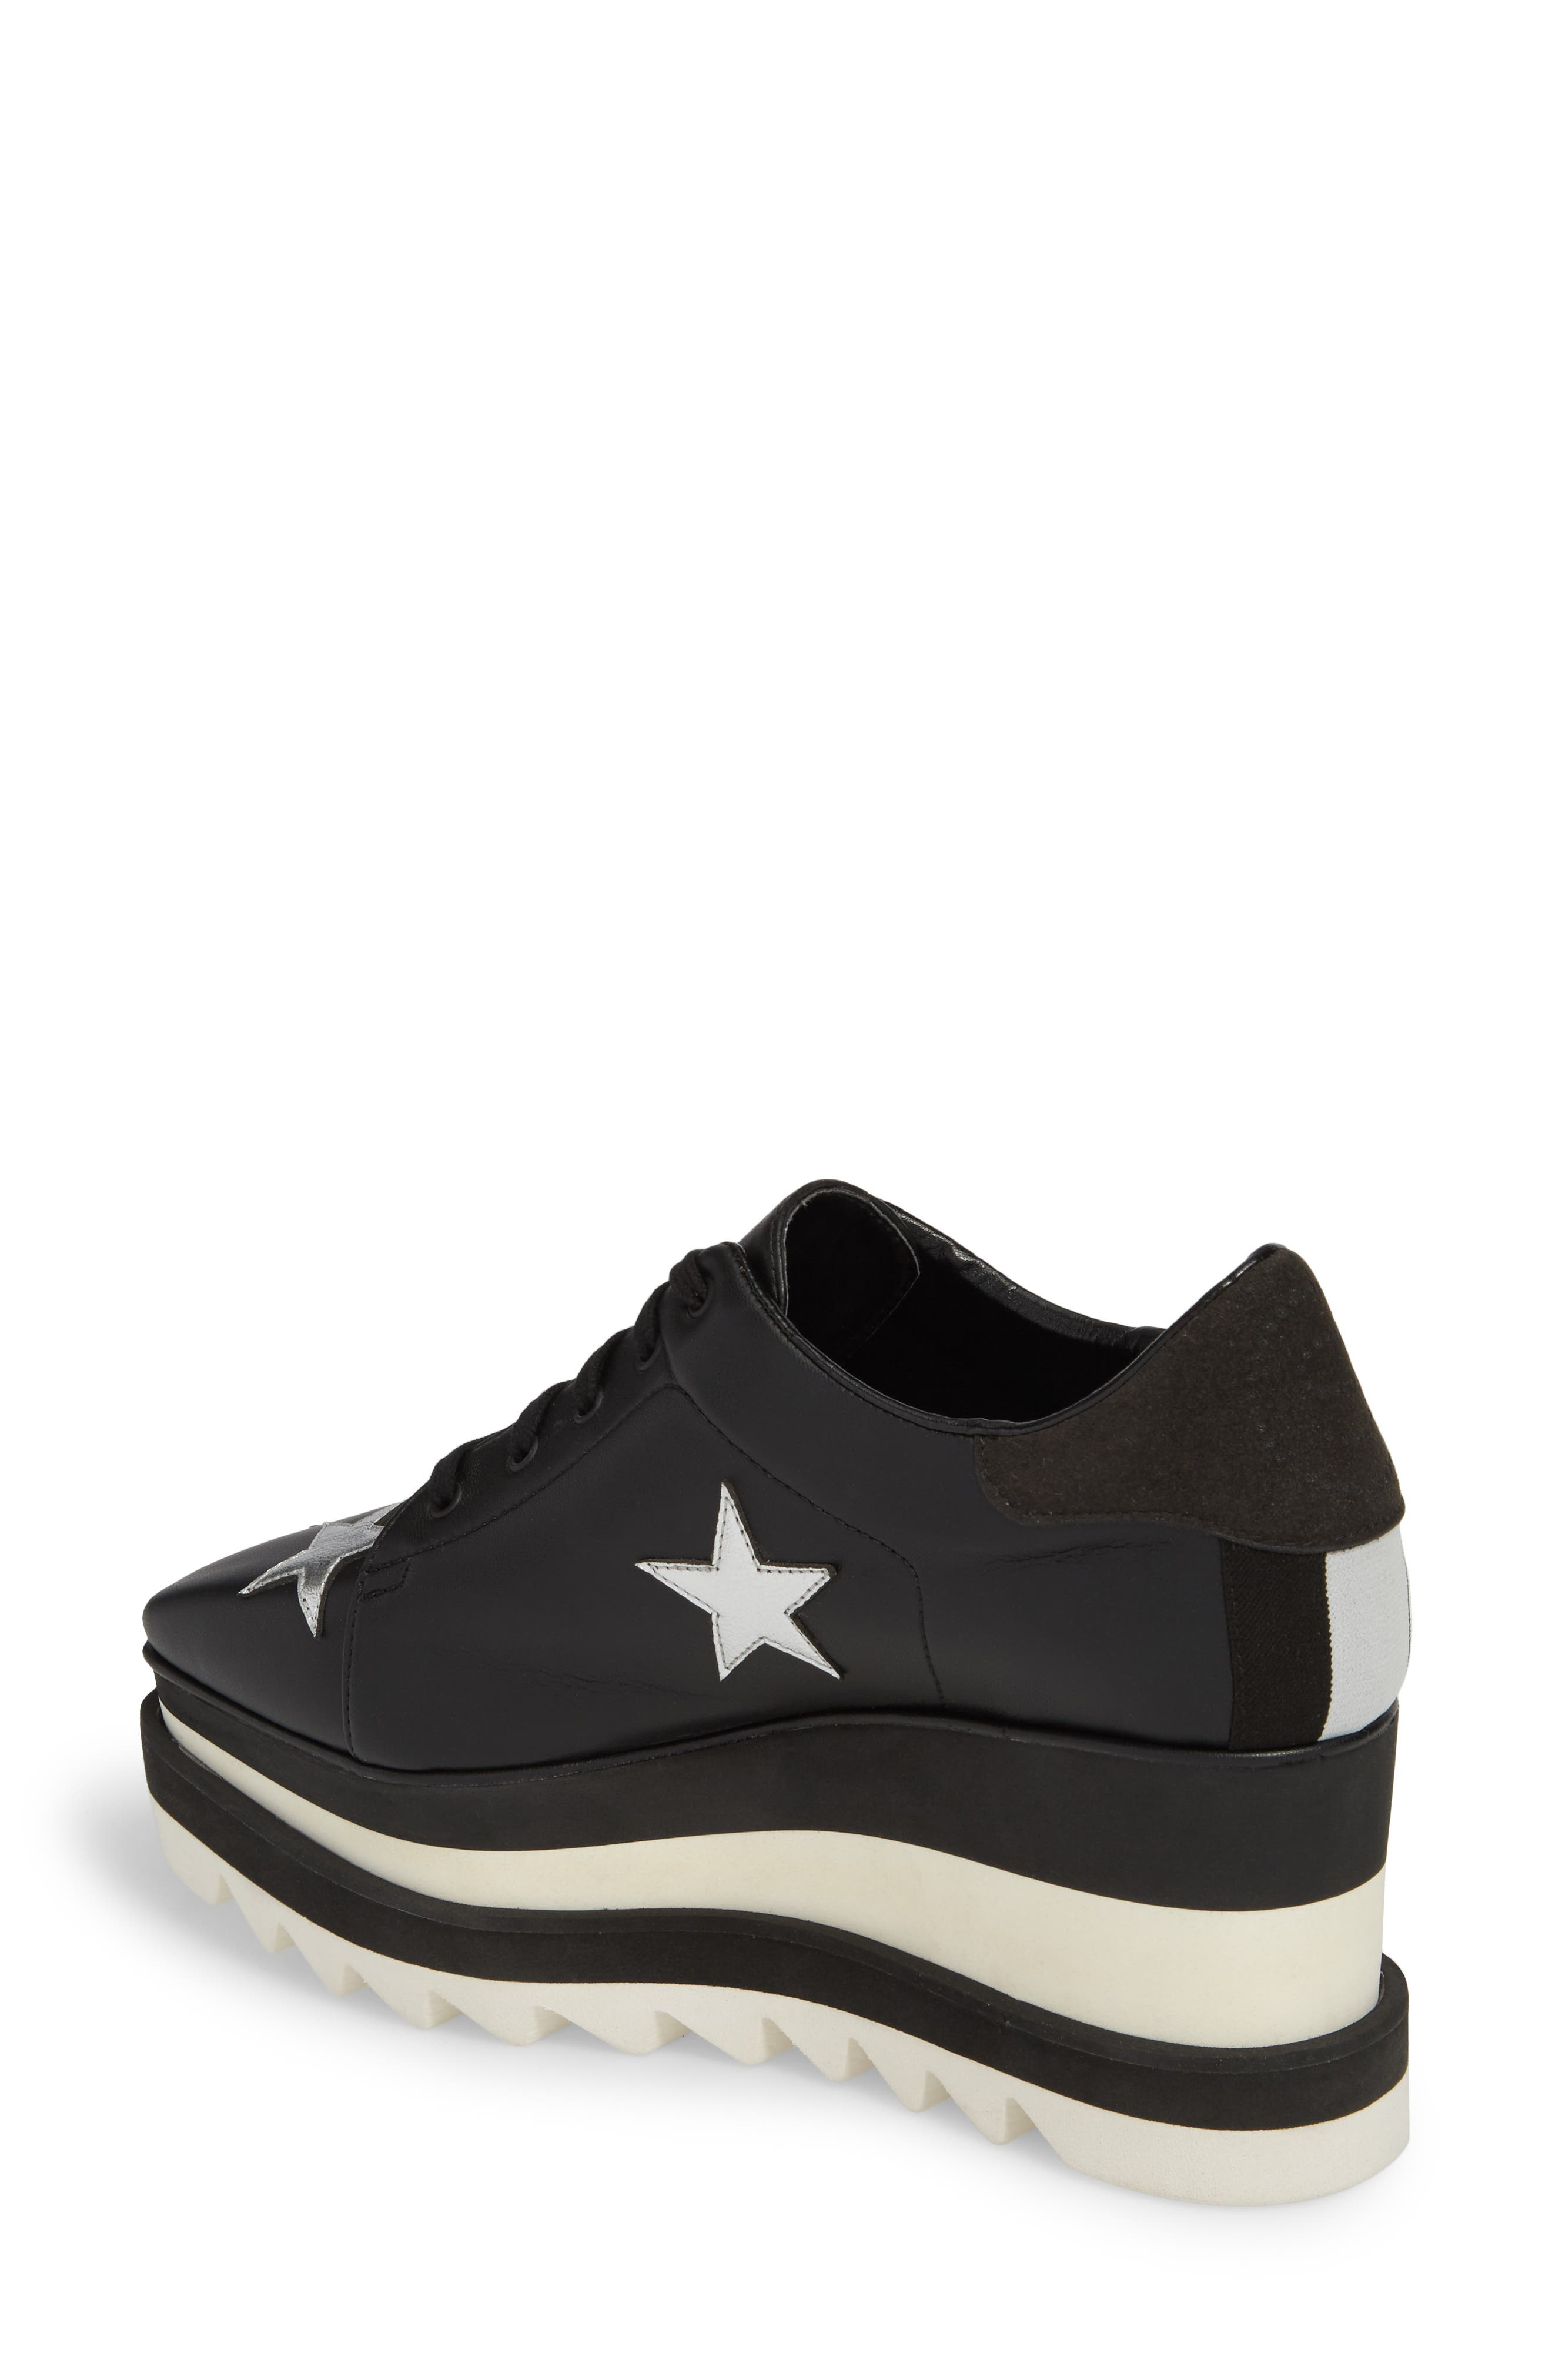 Alternate Image 2  - Stella McCartney Elyse Platform Sneaker (Women)